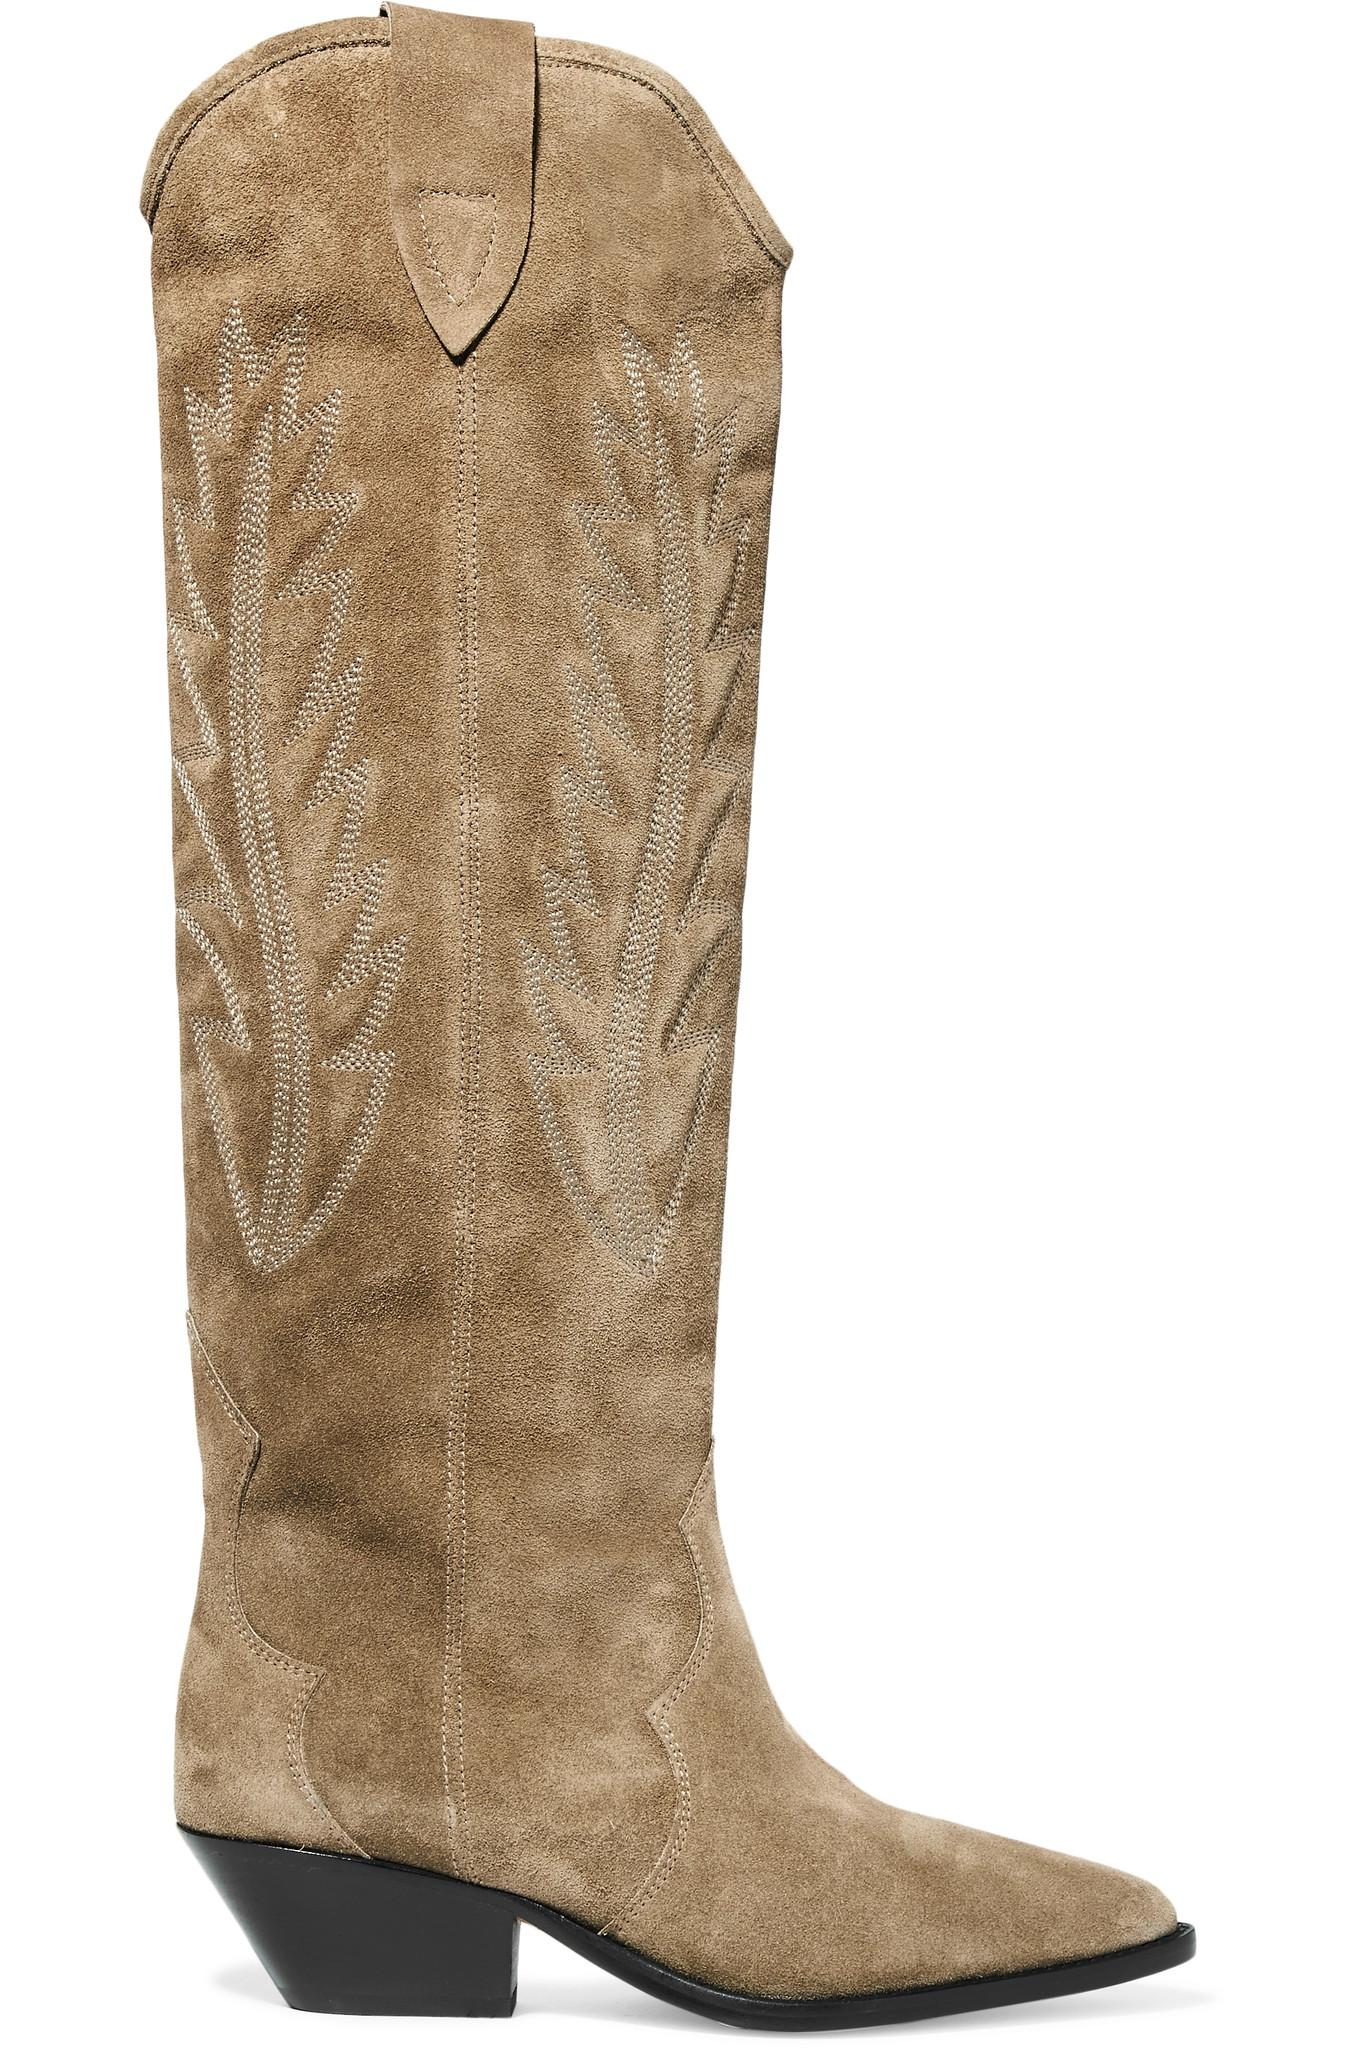 83d63d365a0 Lyst - Isabel Marant Denzy Embroidered Suede Knee Boots in Natural